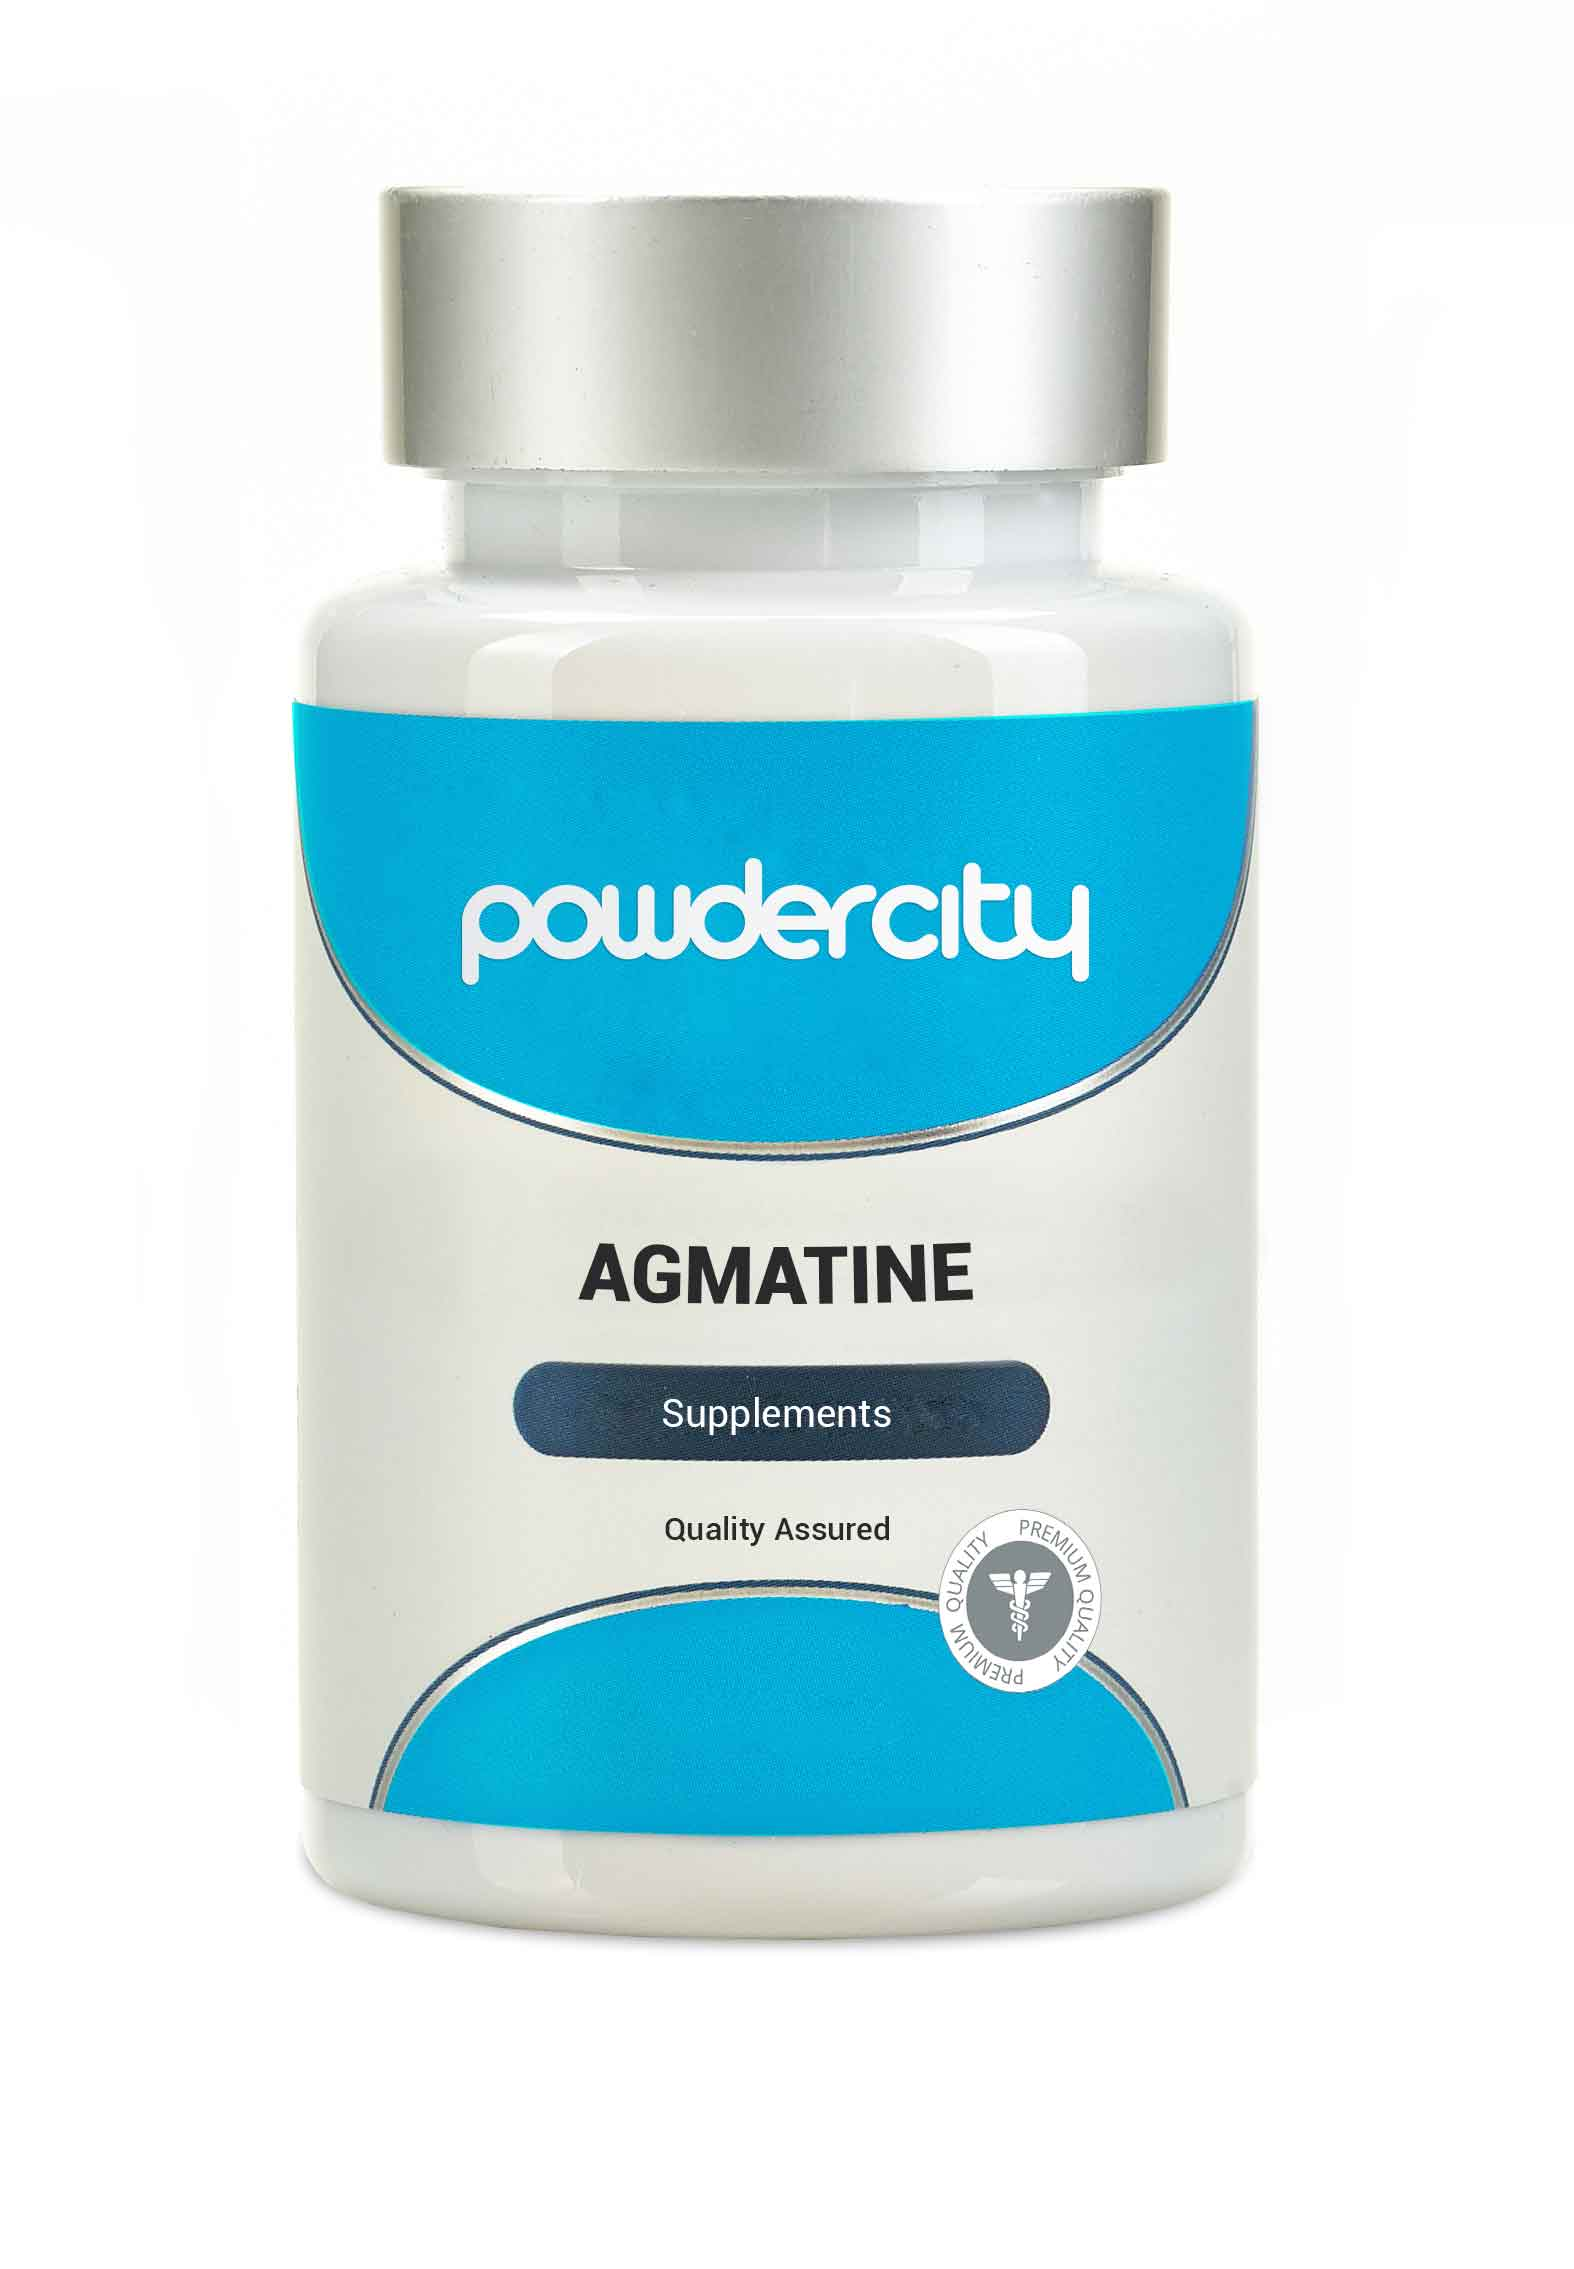 Agmatine Sulfate - Dosage, Reviews, Stacks & Science